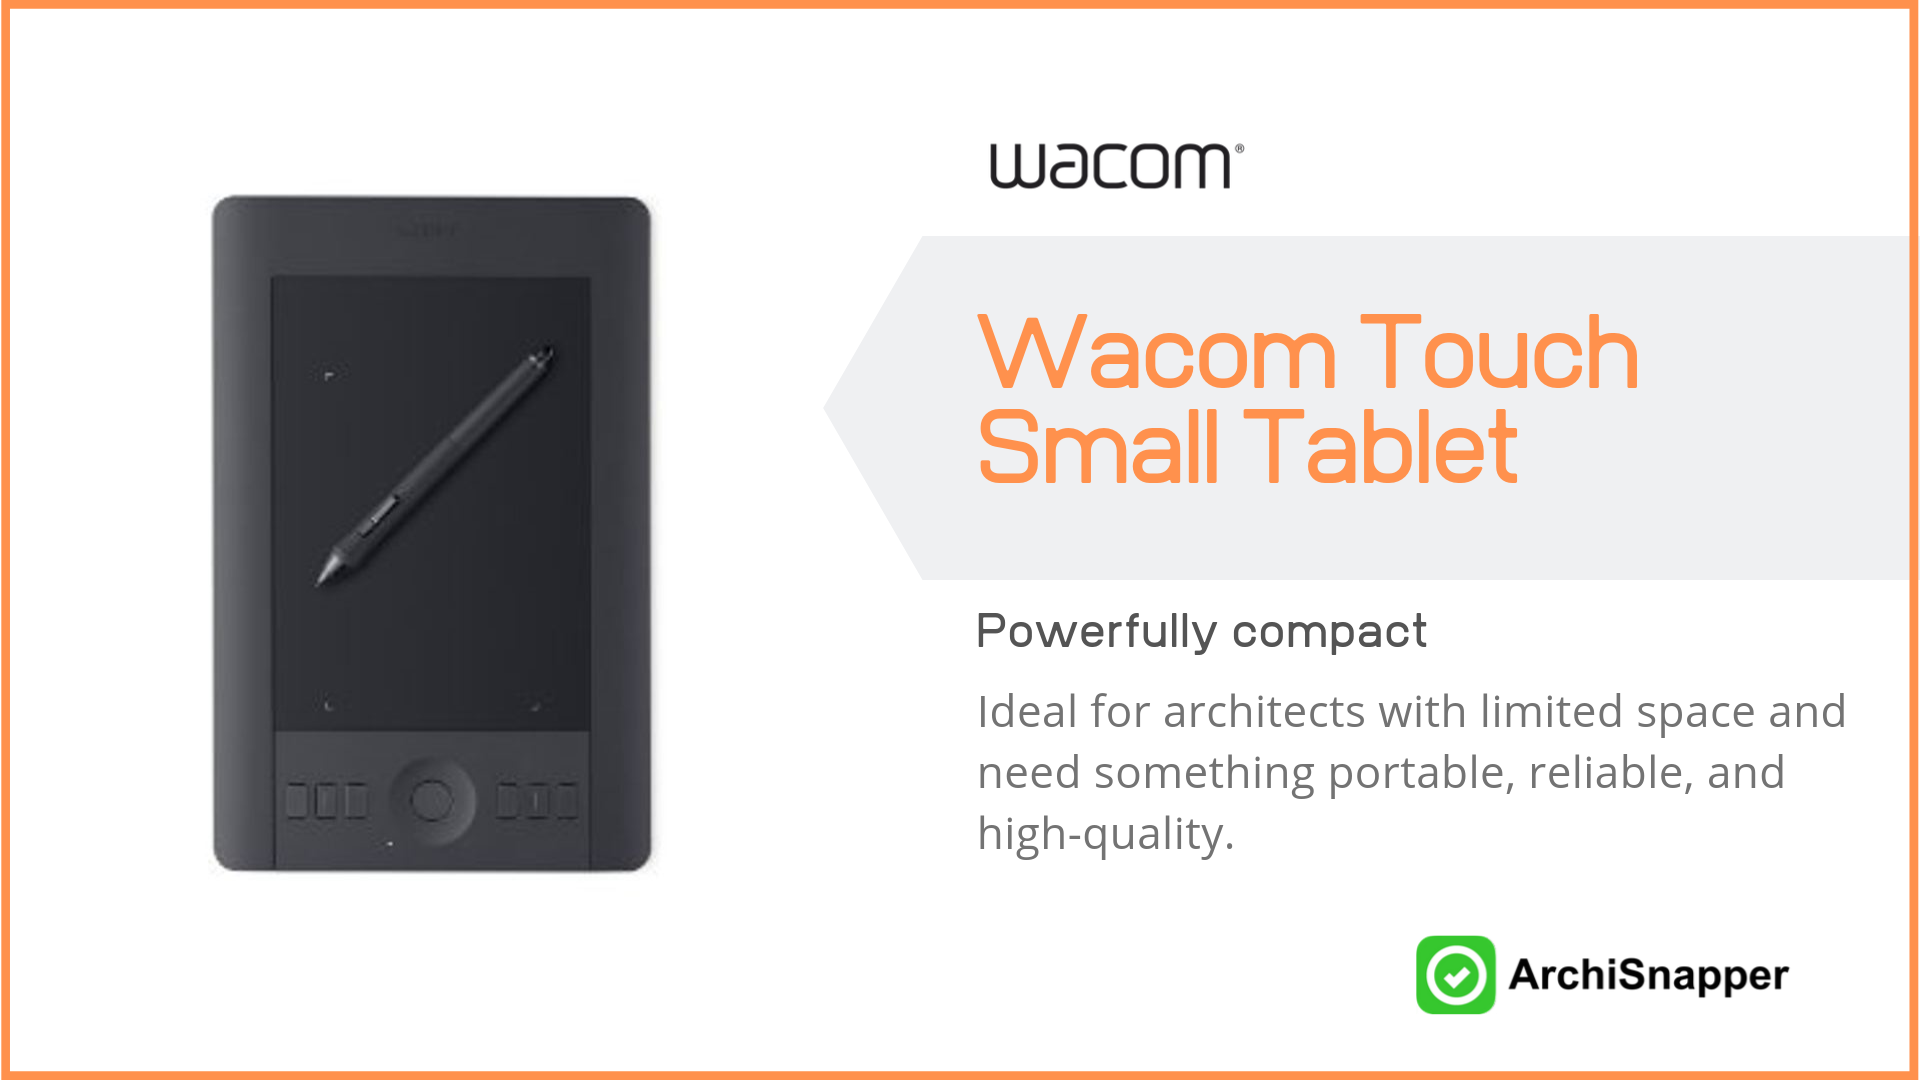 Wacom Intuos Pro Pen and Touch Small Tablet | the 15 must-have tech tools